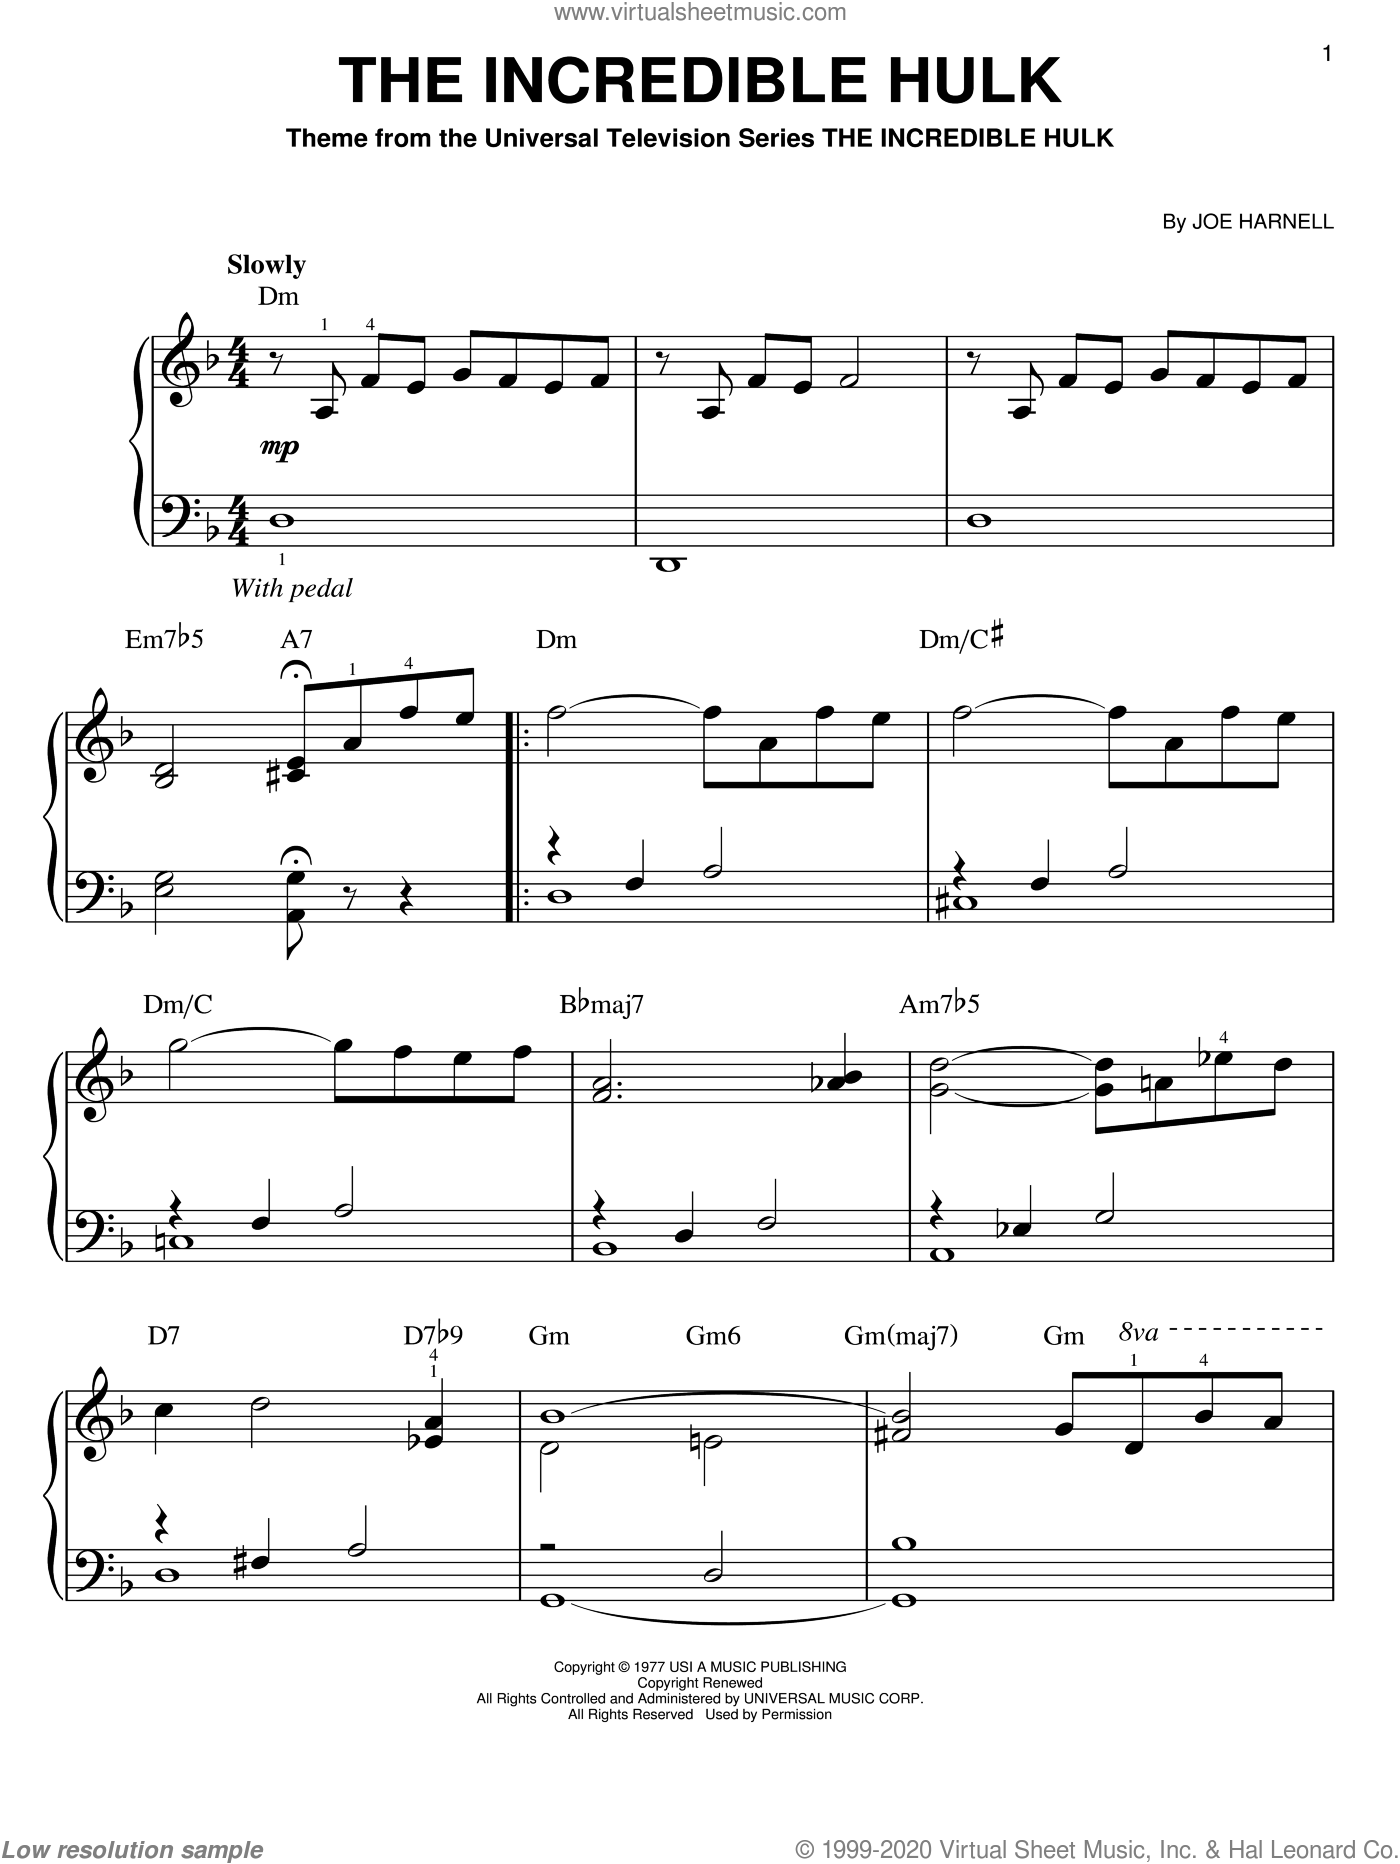 The Incredible Hulk sheet music for piano solo (chords) by Joe Harnell